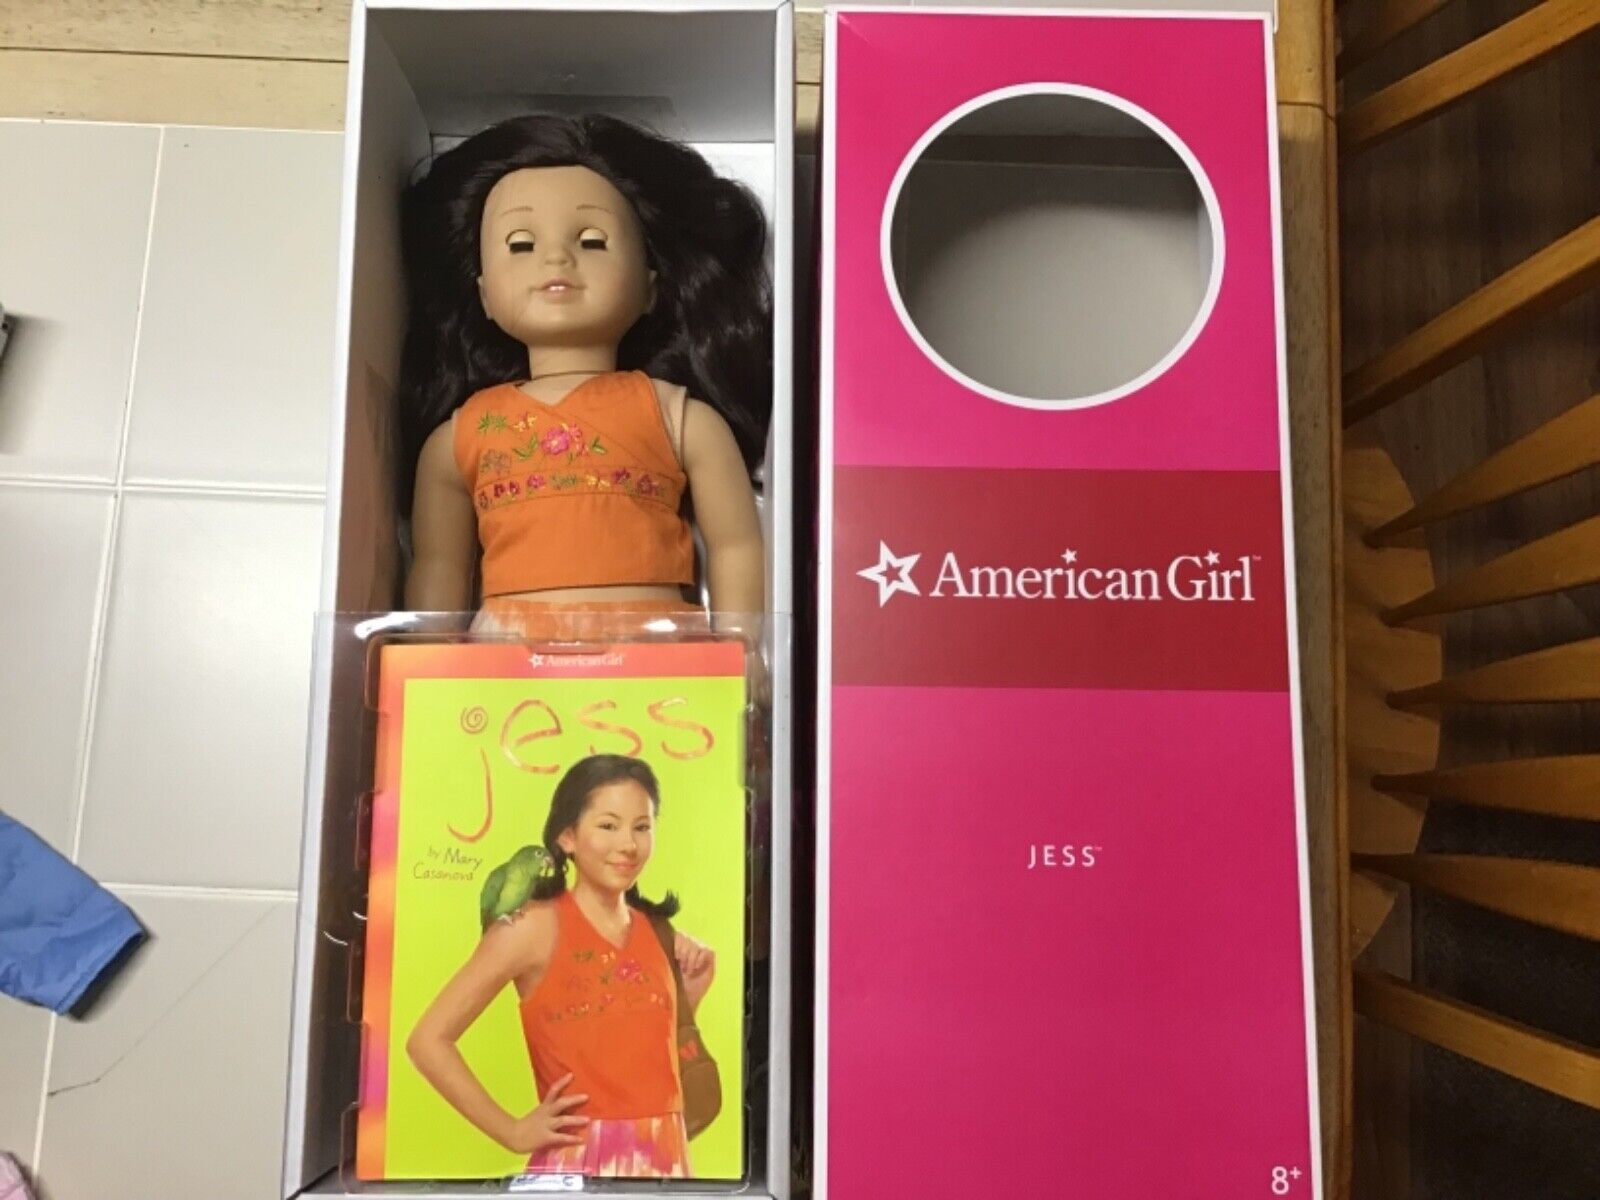 AMERICAN GIRL LOT JESS McCONNELL 2006 GIRL OF THE YEAR RETIrot